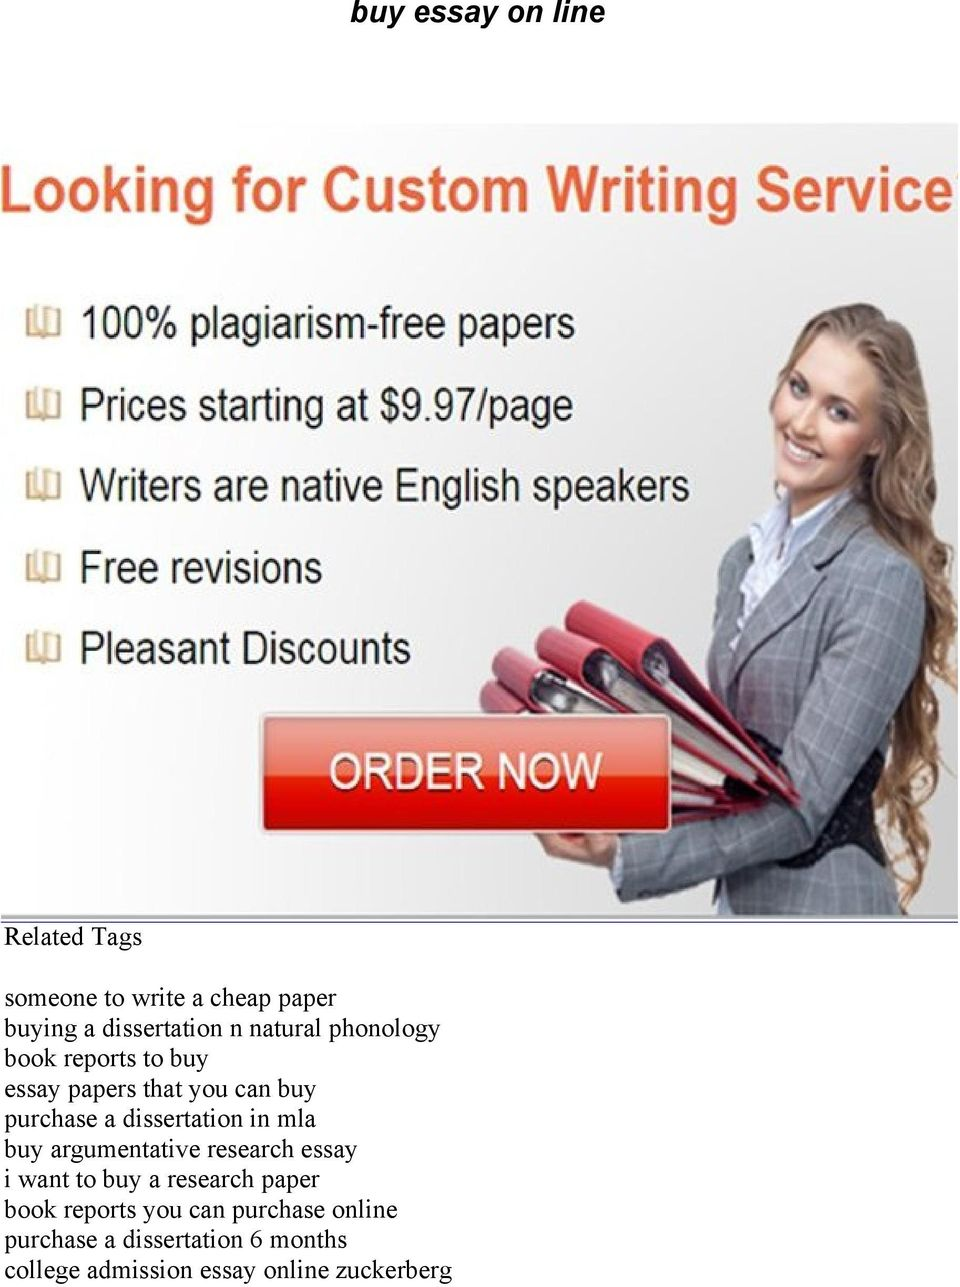 dissertation in mla buy argumentative research essay i want to buy a research paper book